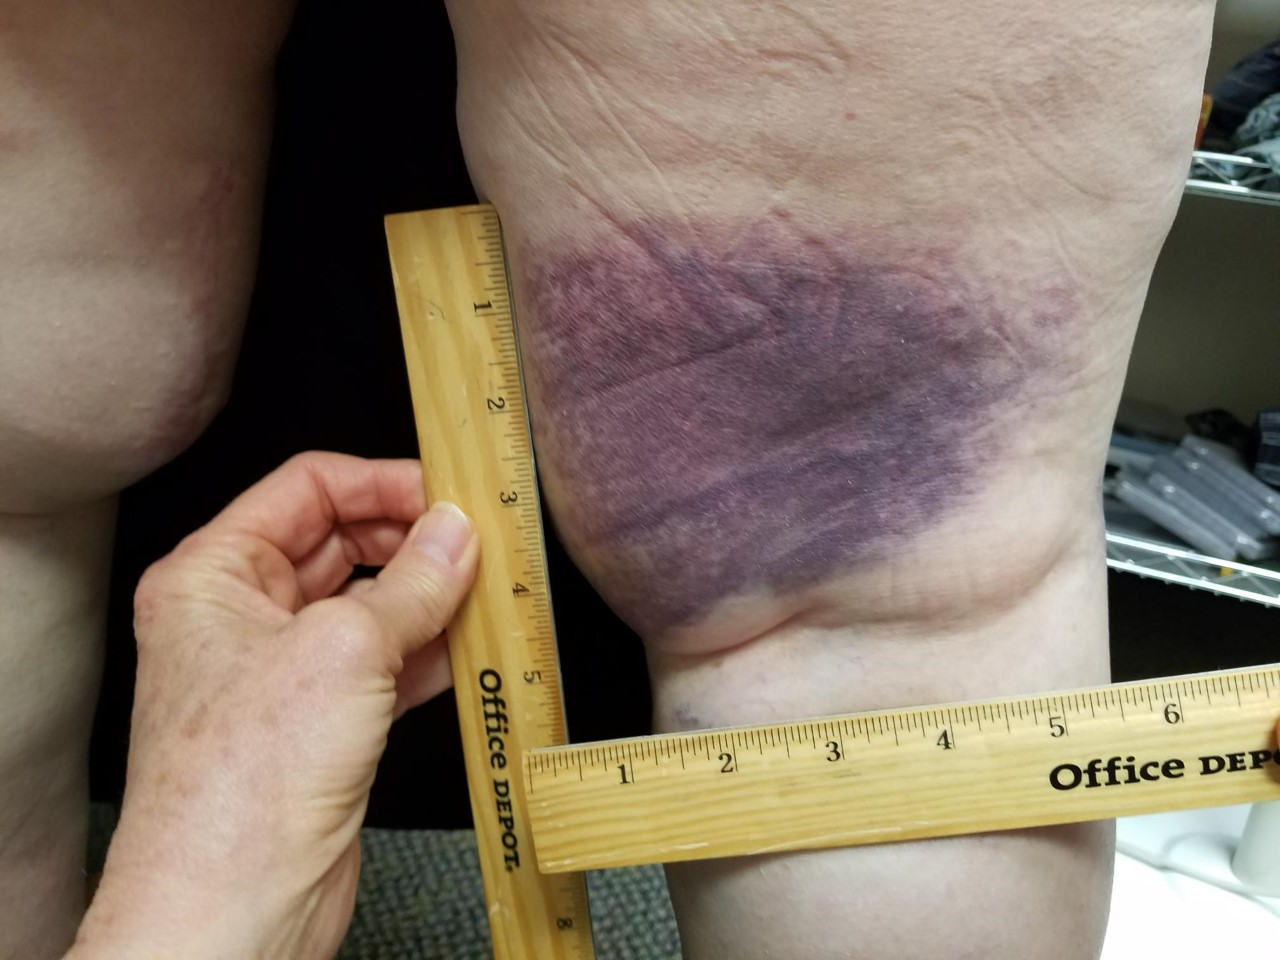 measuring patient's leg bruising with rulers, deep oscillation therapy